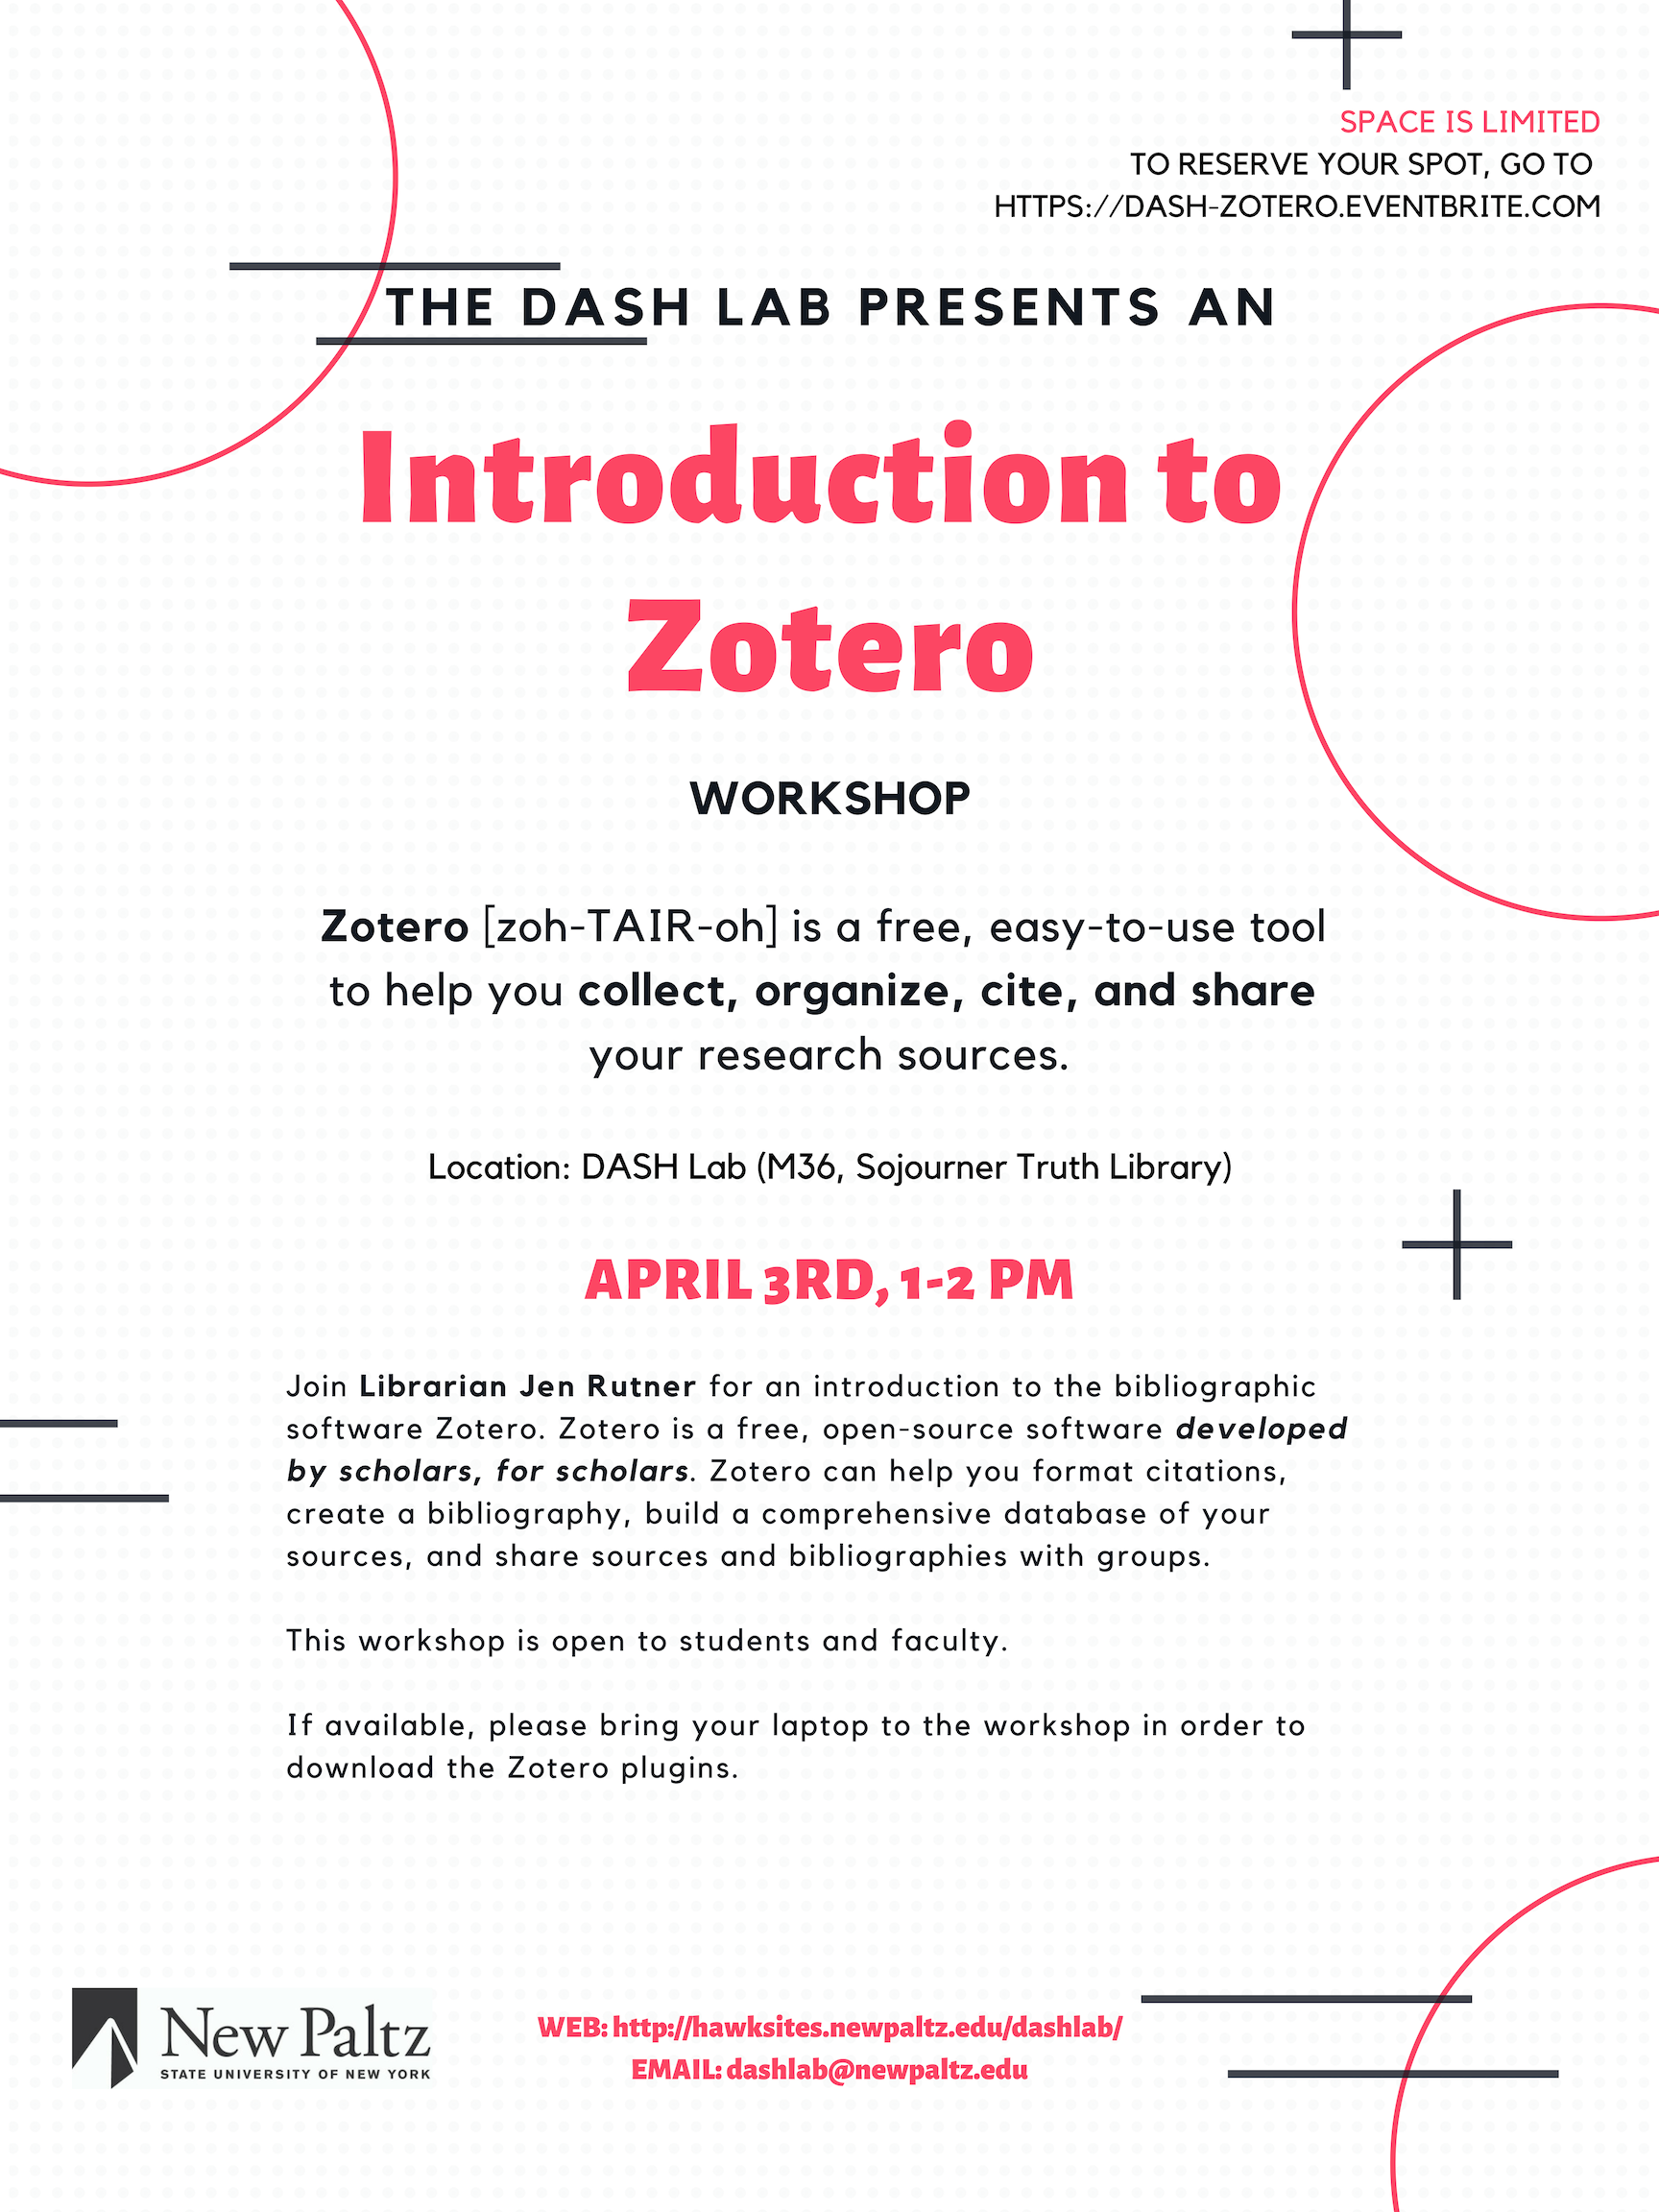 DASH Lab Training: Introduction to Zotero